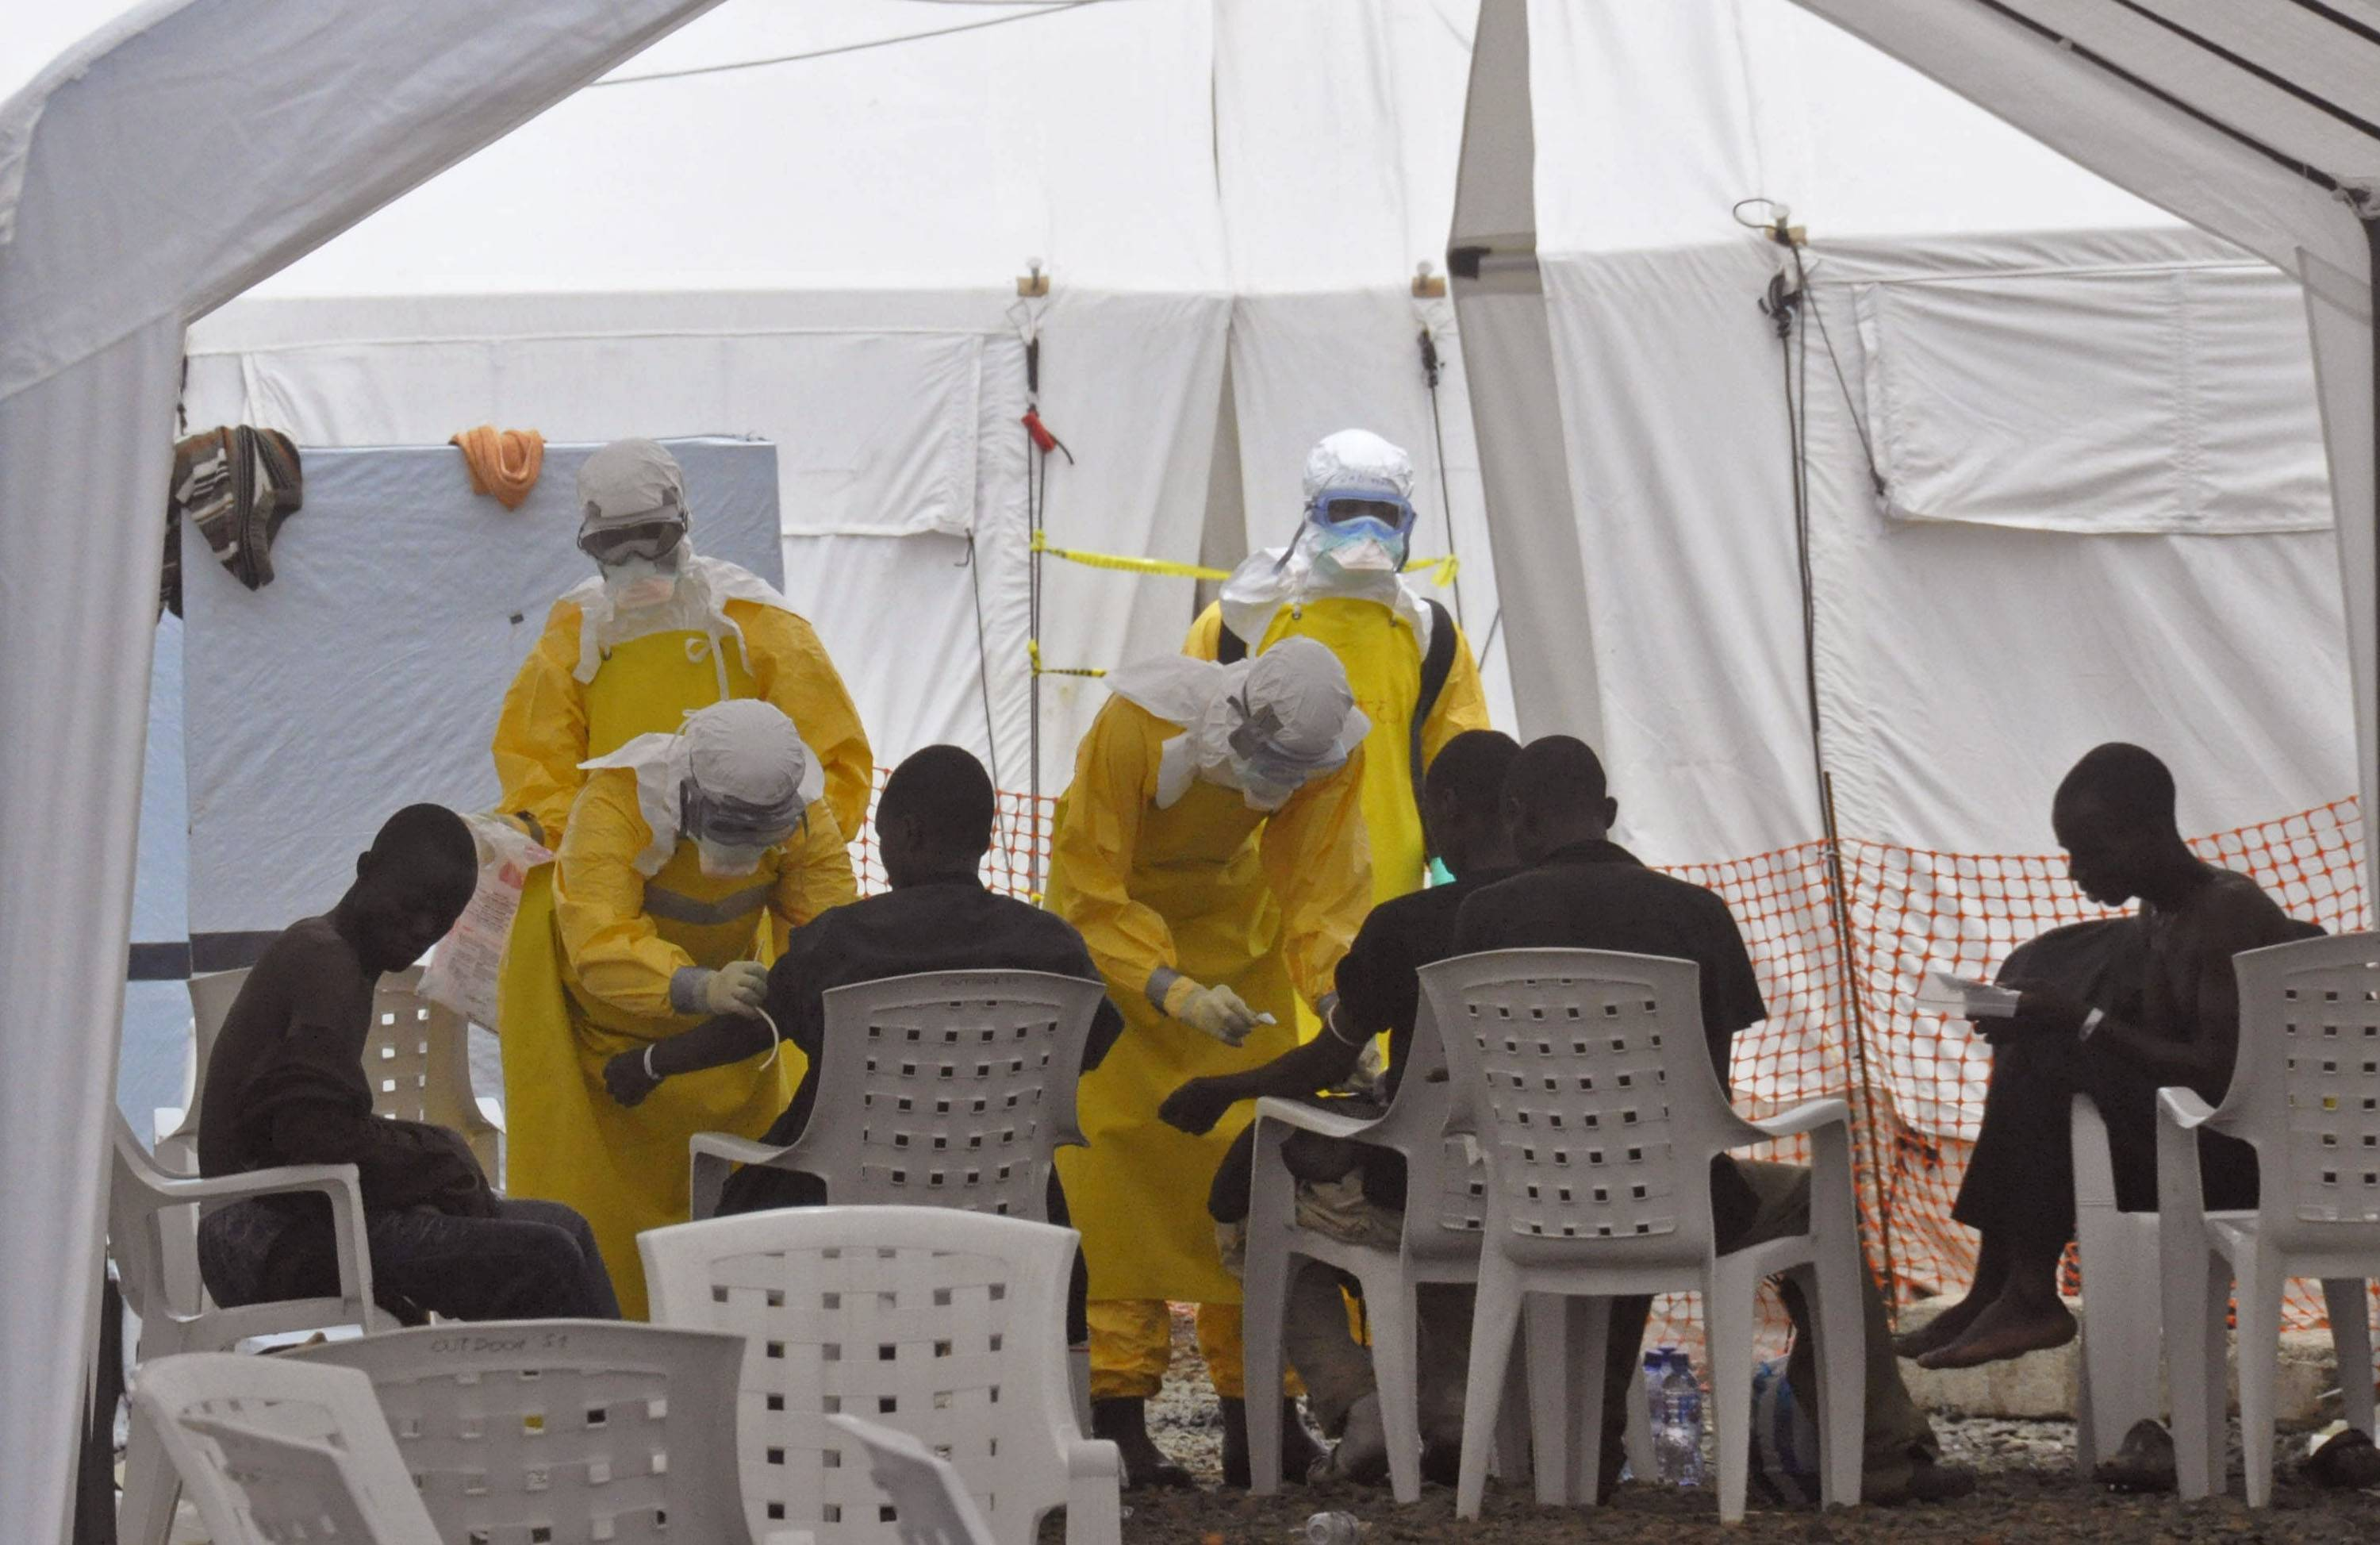 With surge in Liberia, Ebola case toll above 4,200